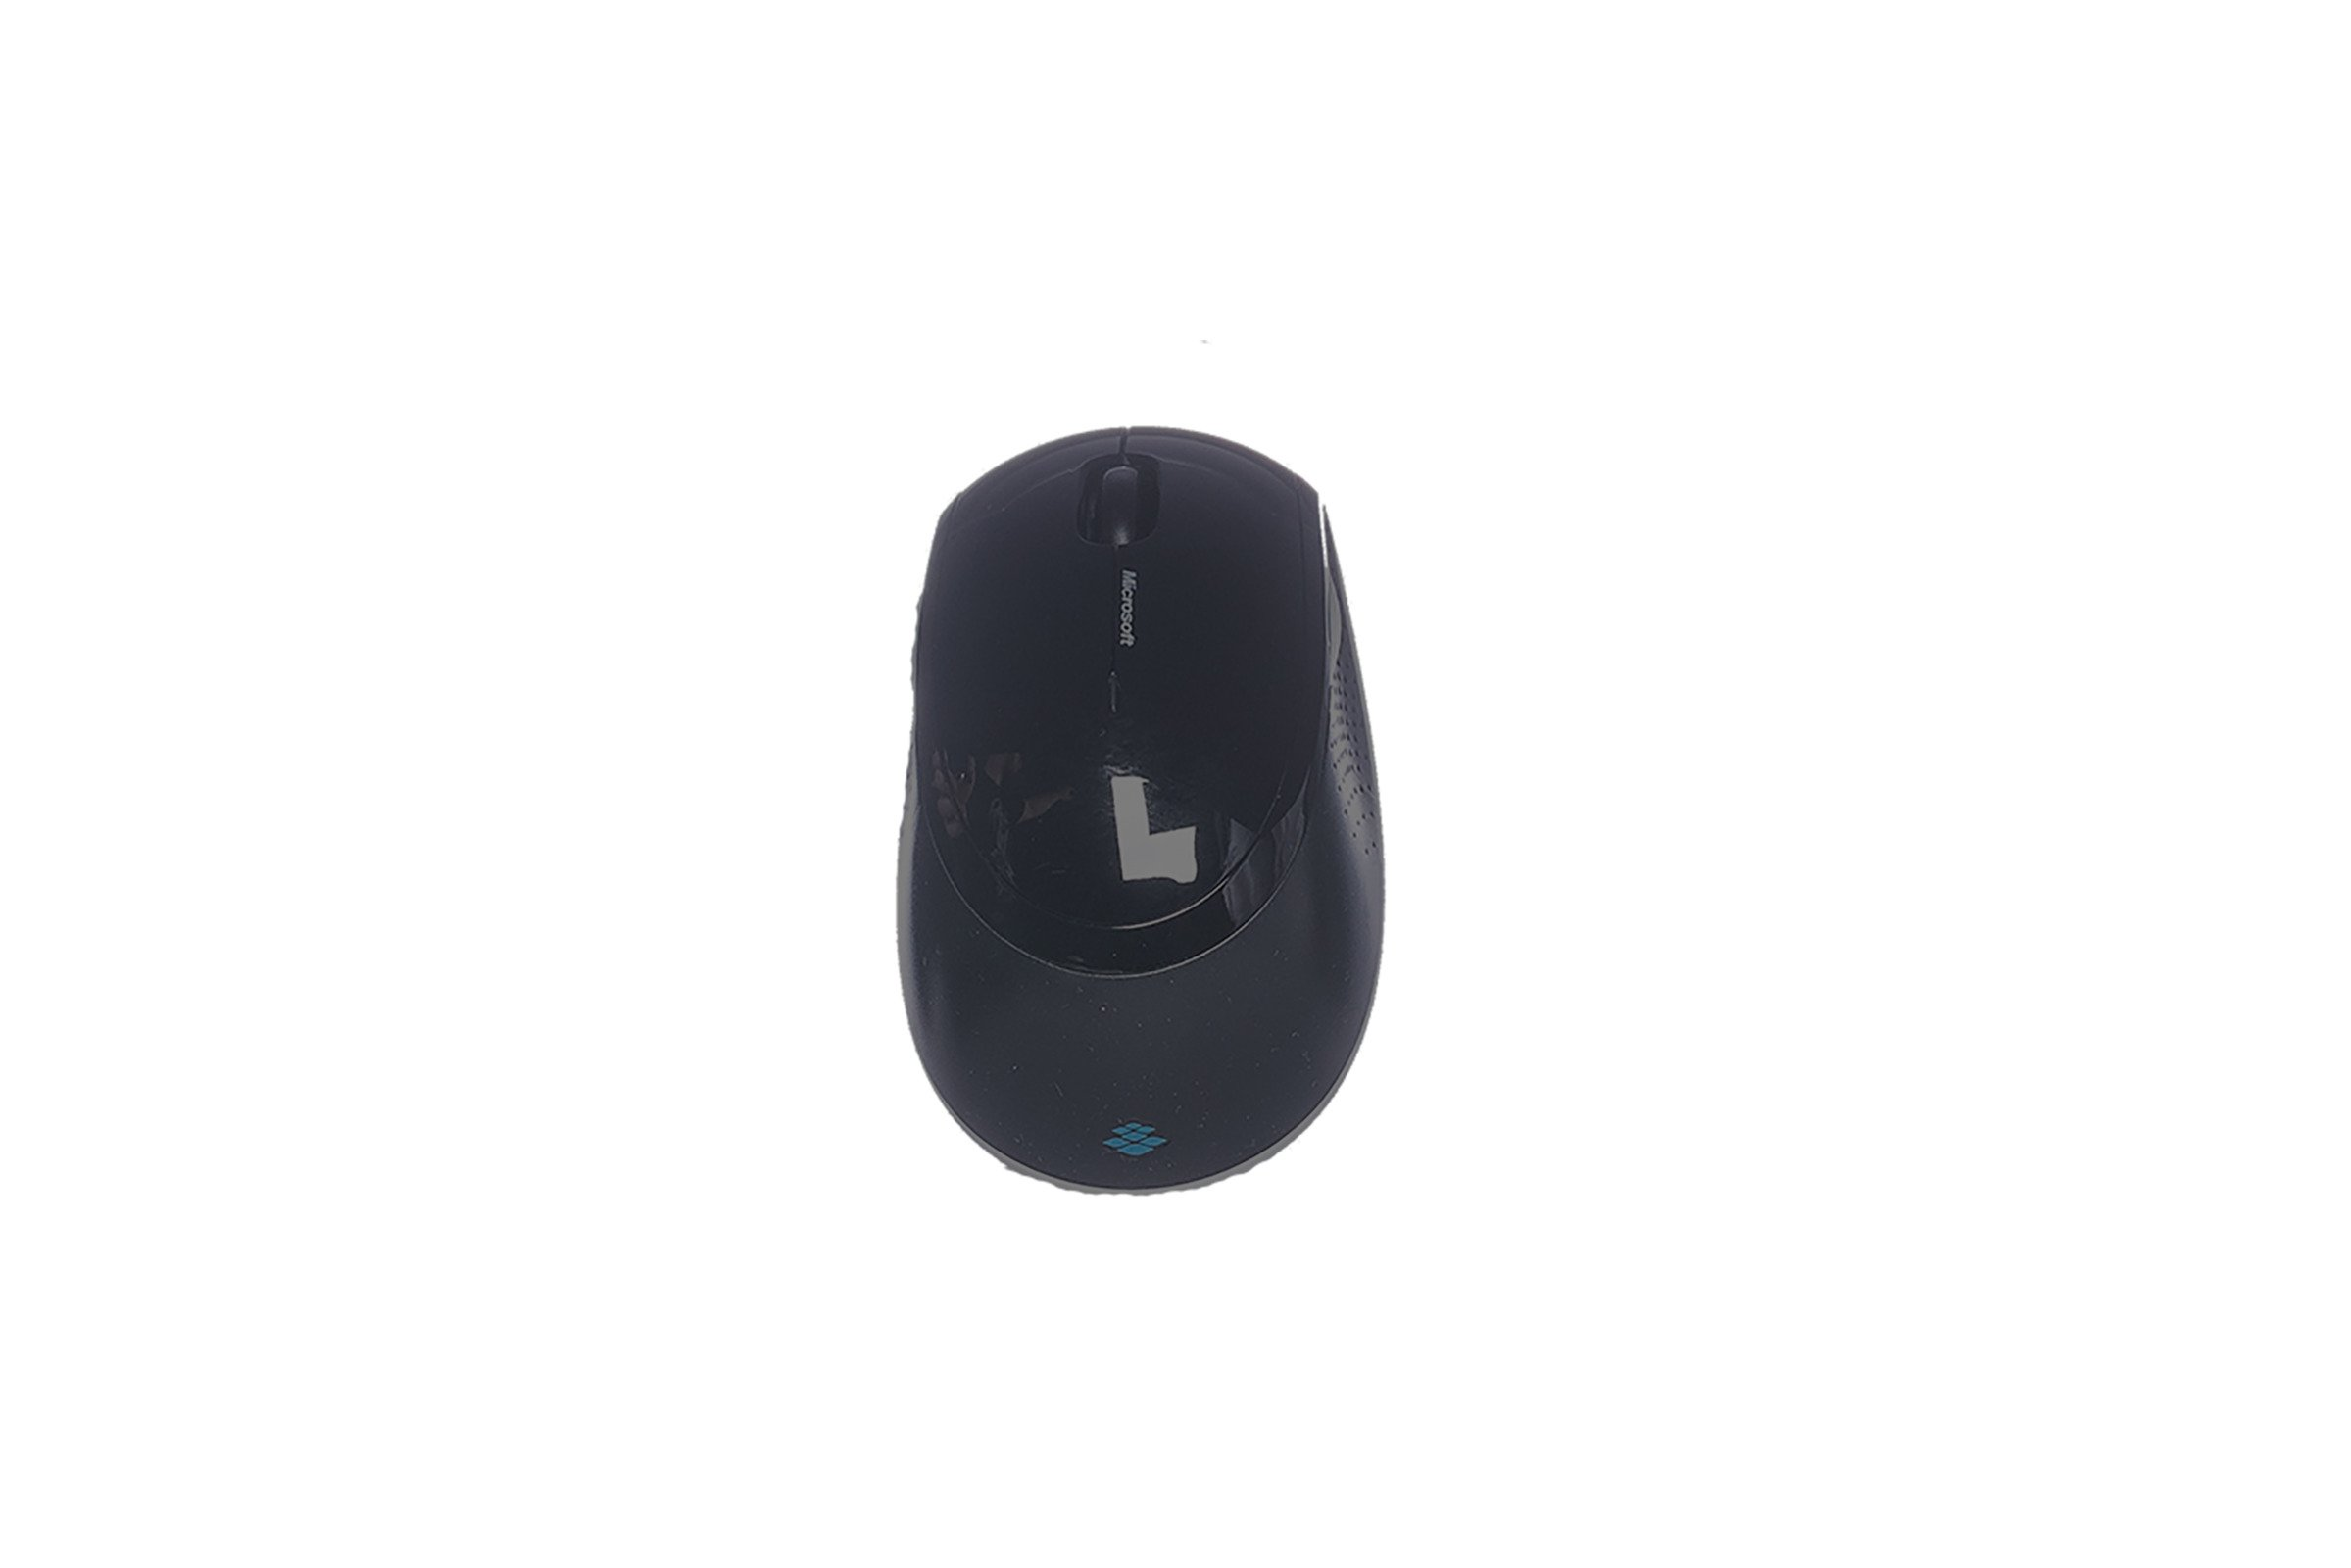 microsoft wireless 3000 desktop hungarian keyboard and mouse set mfc 00023 882224779982 ebay. Black Bedroom Furniture Sets. Home Design Ideas